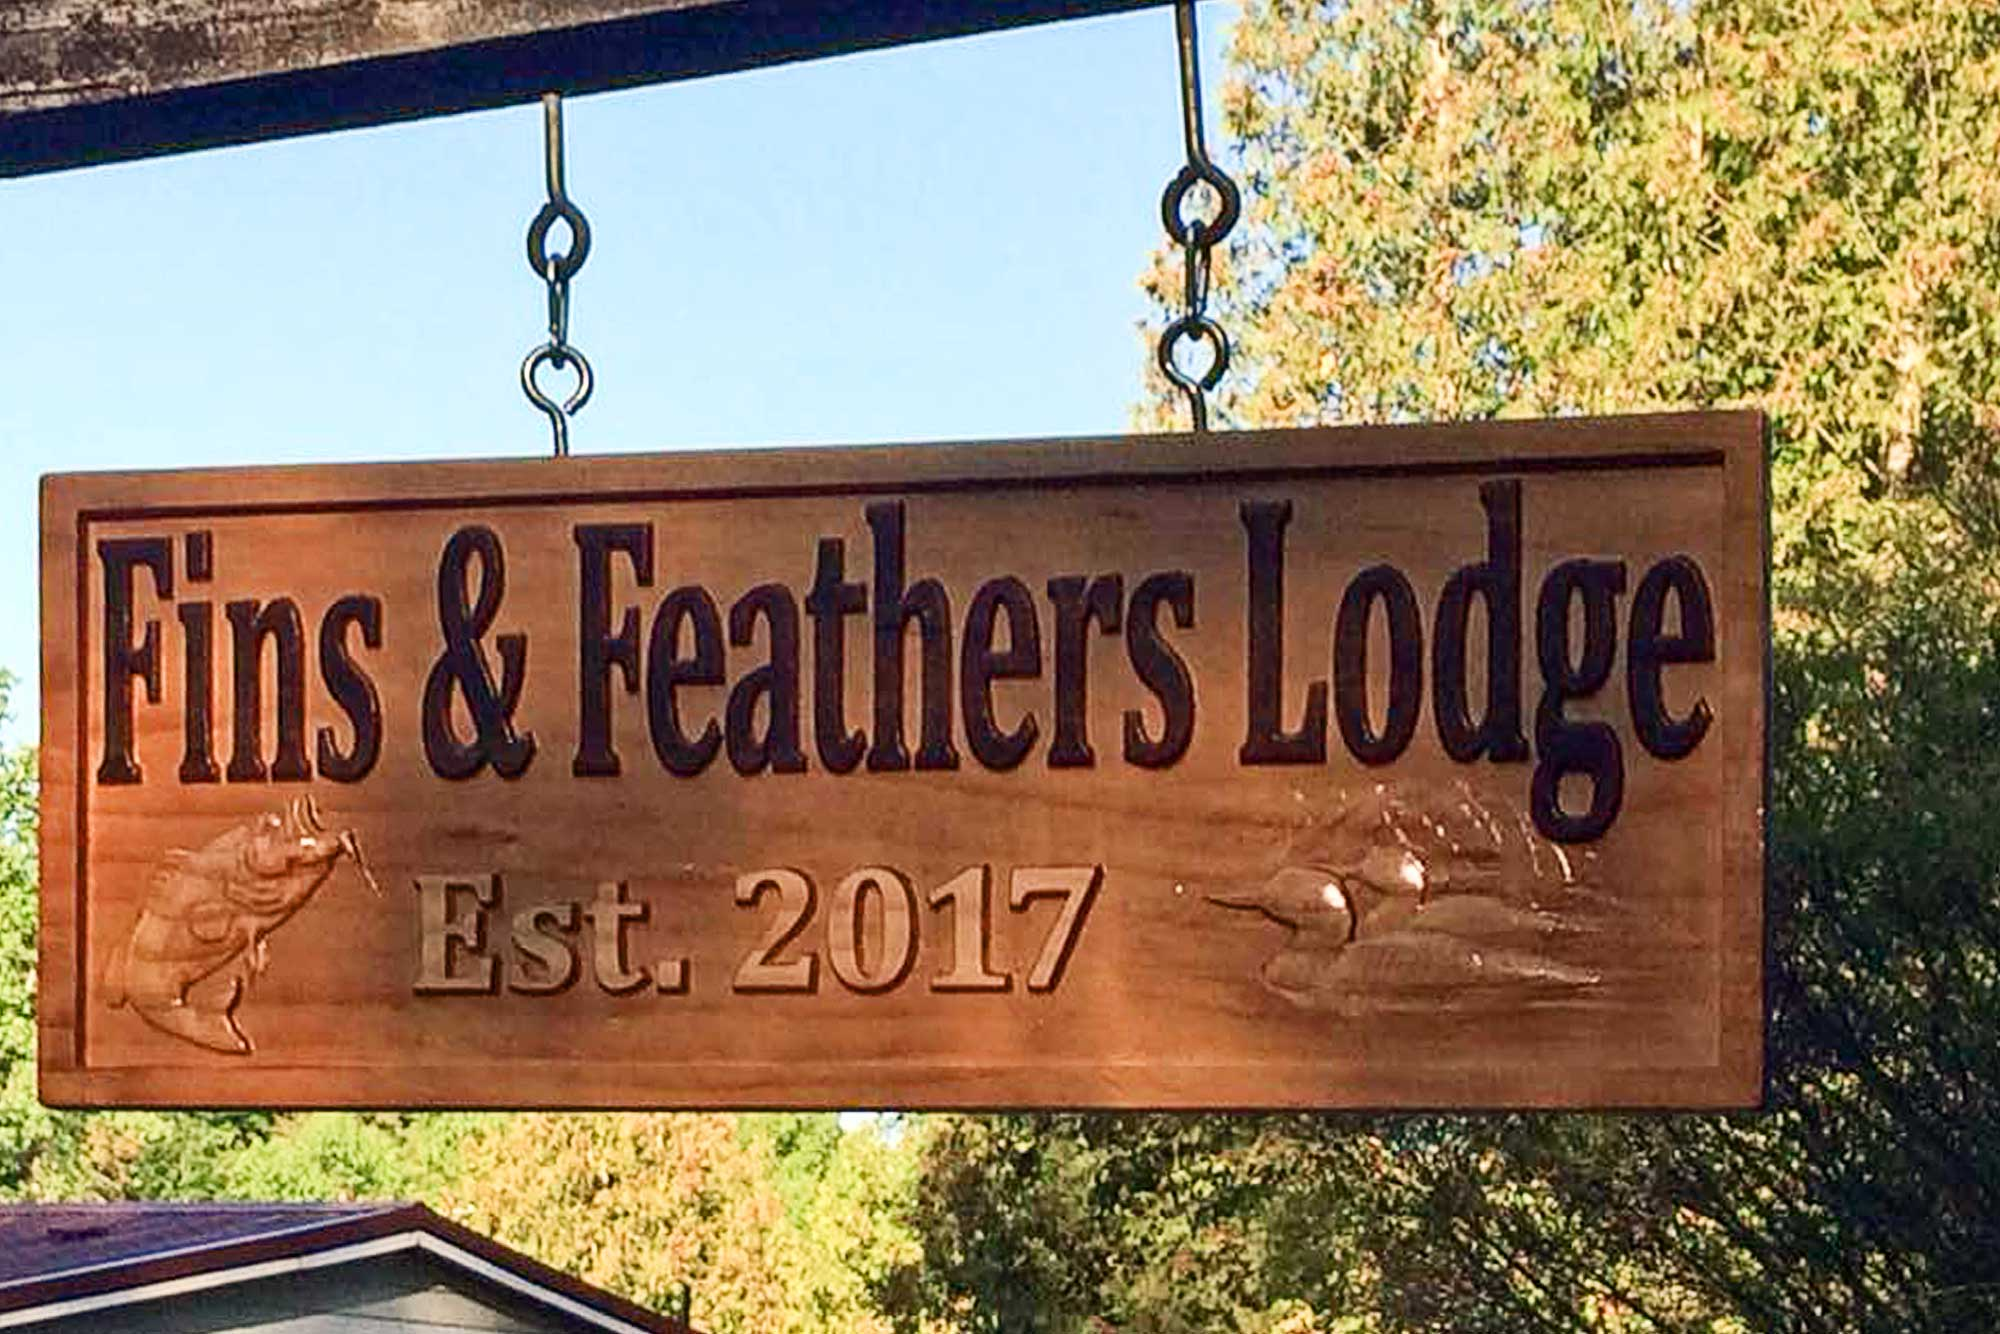 Pack your bags and head to 'Fins & Feathers Lodge!'